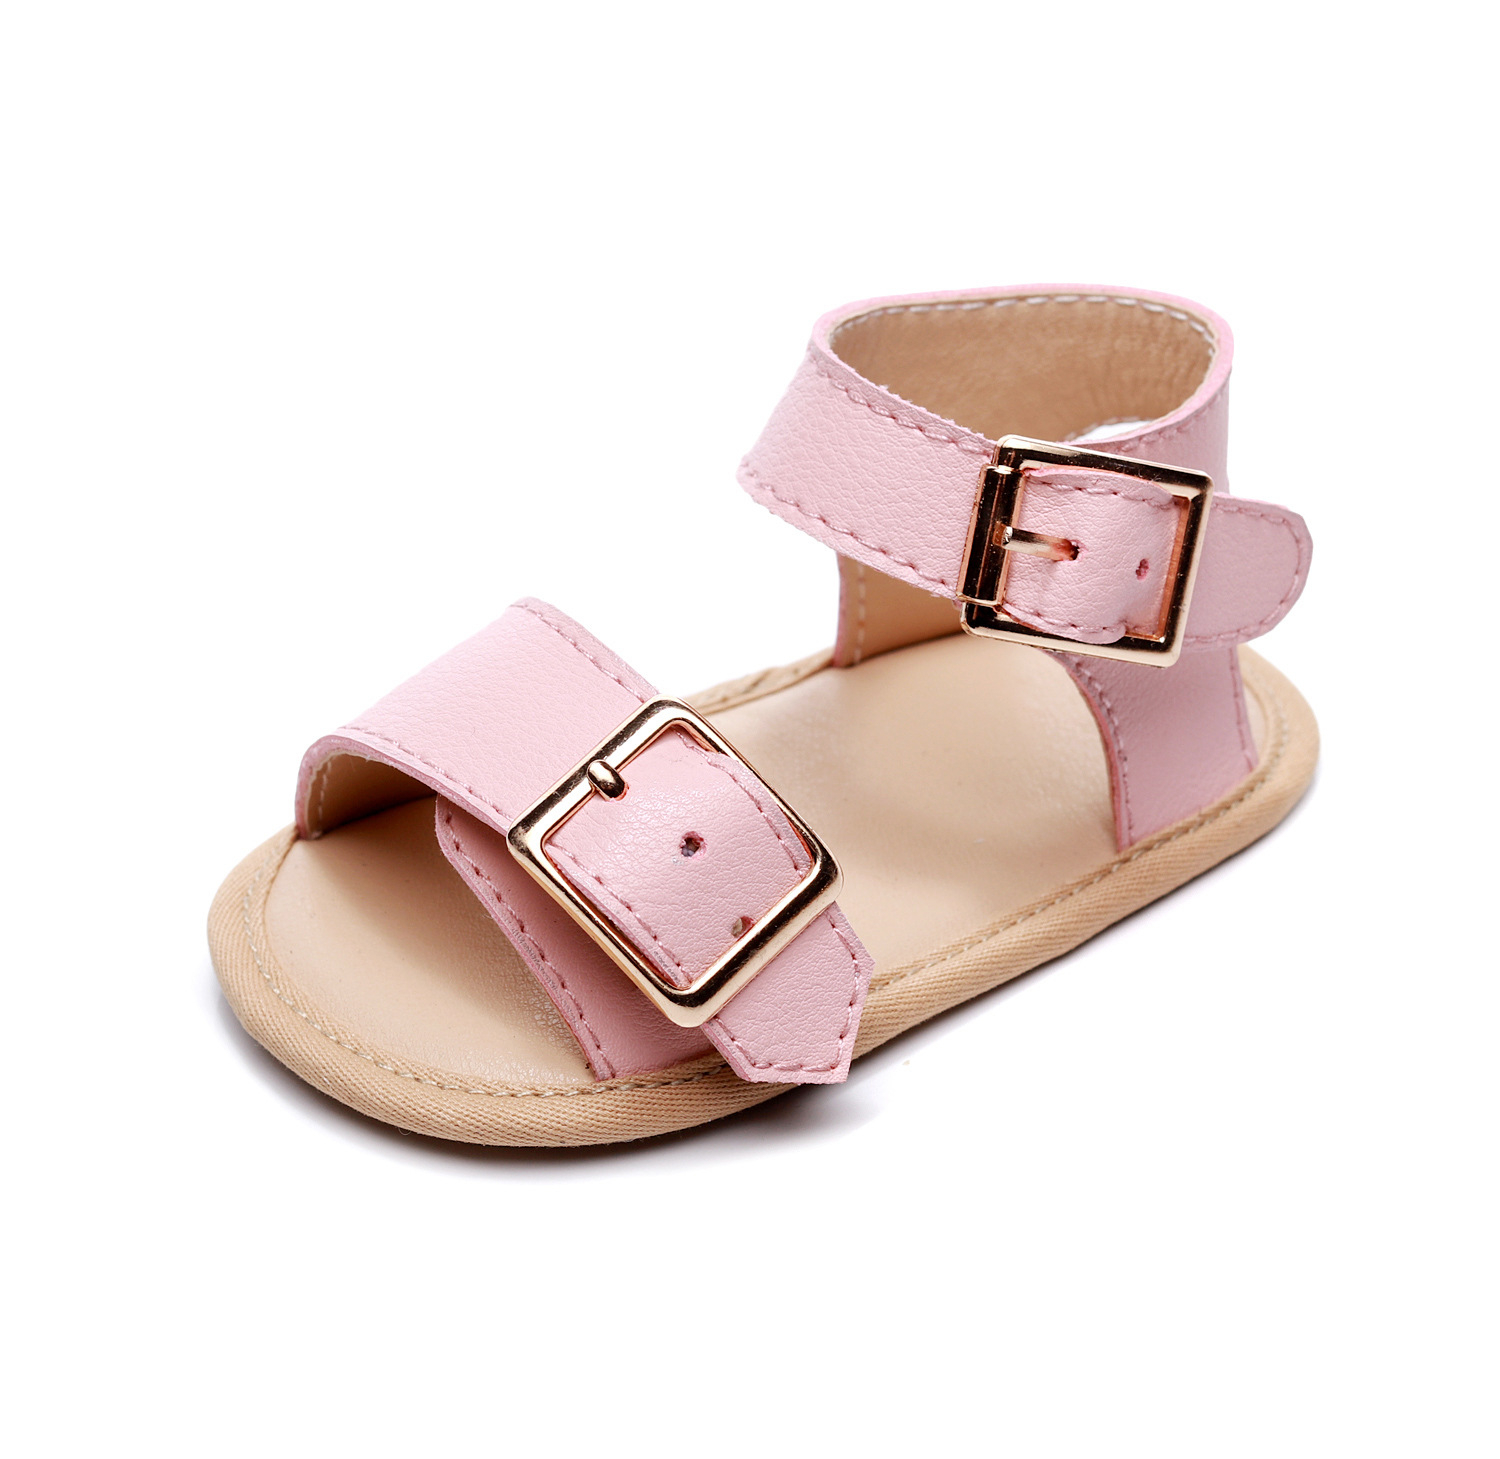 SummerNew Bright Leather Baby Girls Sandals Princess Shoes Infant Toddler Girls Shoes Sandals For Baby Girls  Leather Clogs